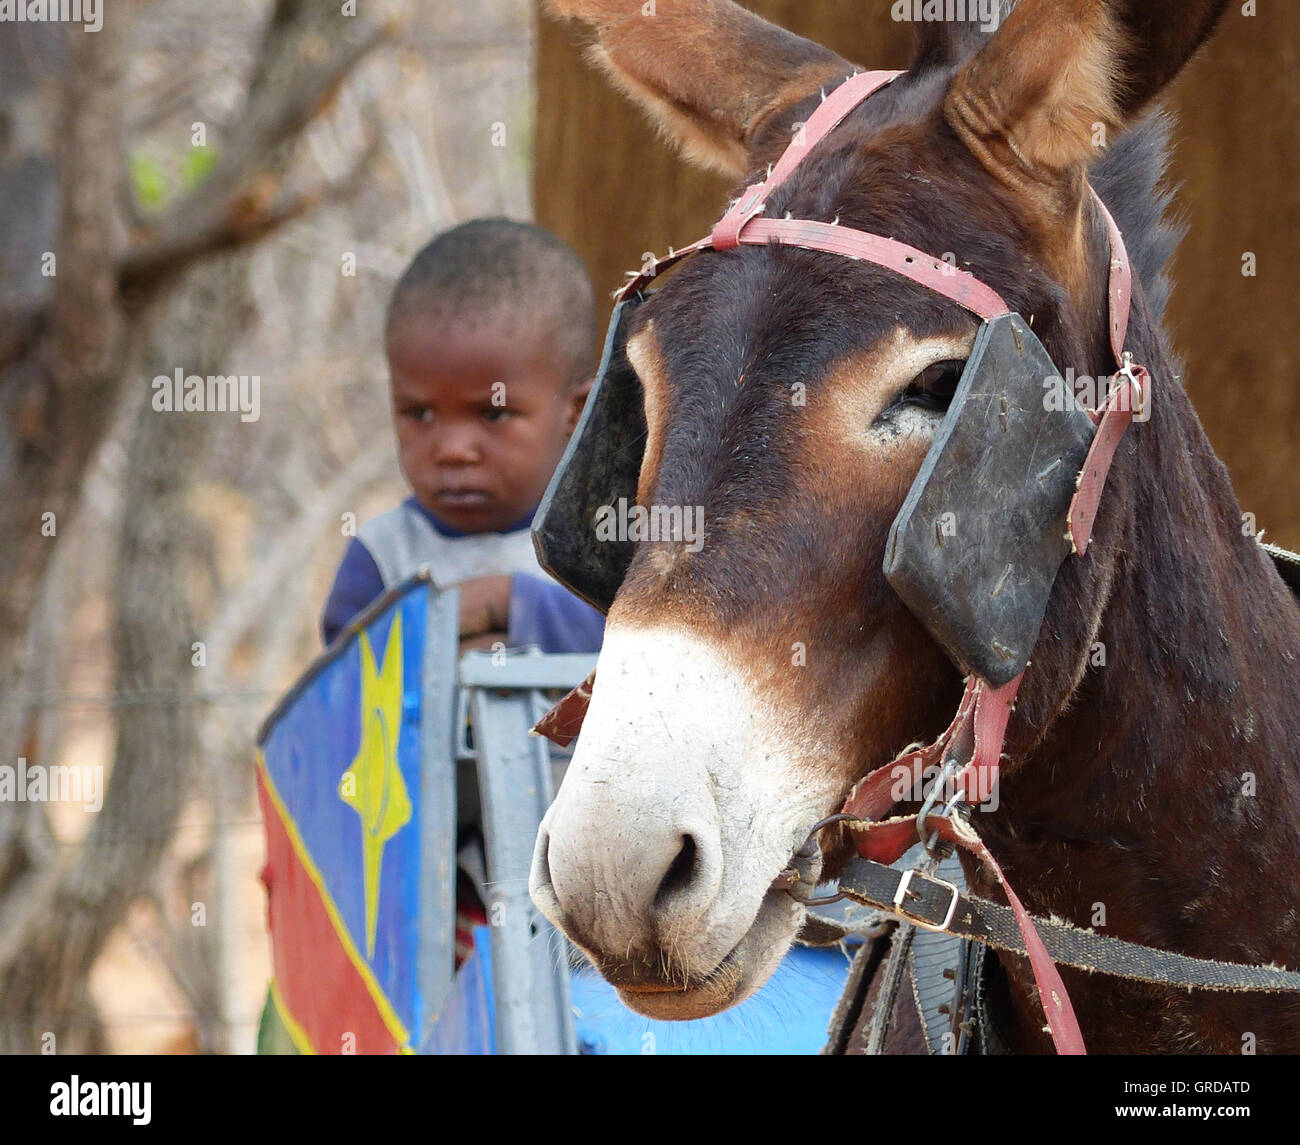 Donkey Wagon And Aside A Young Child, Colorfully Dressed, Himba, Namibia - Stock Image